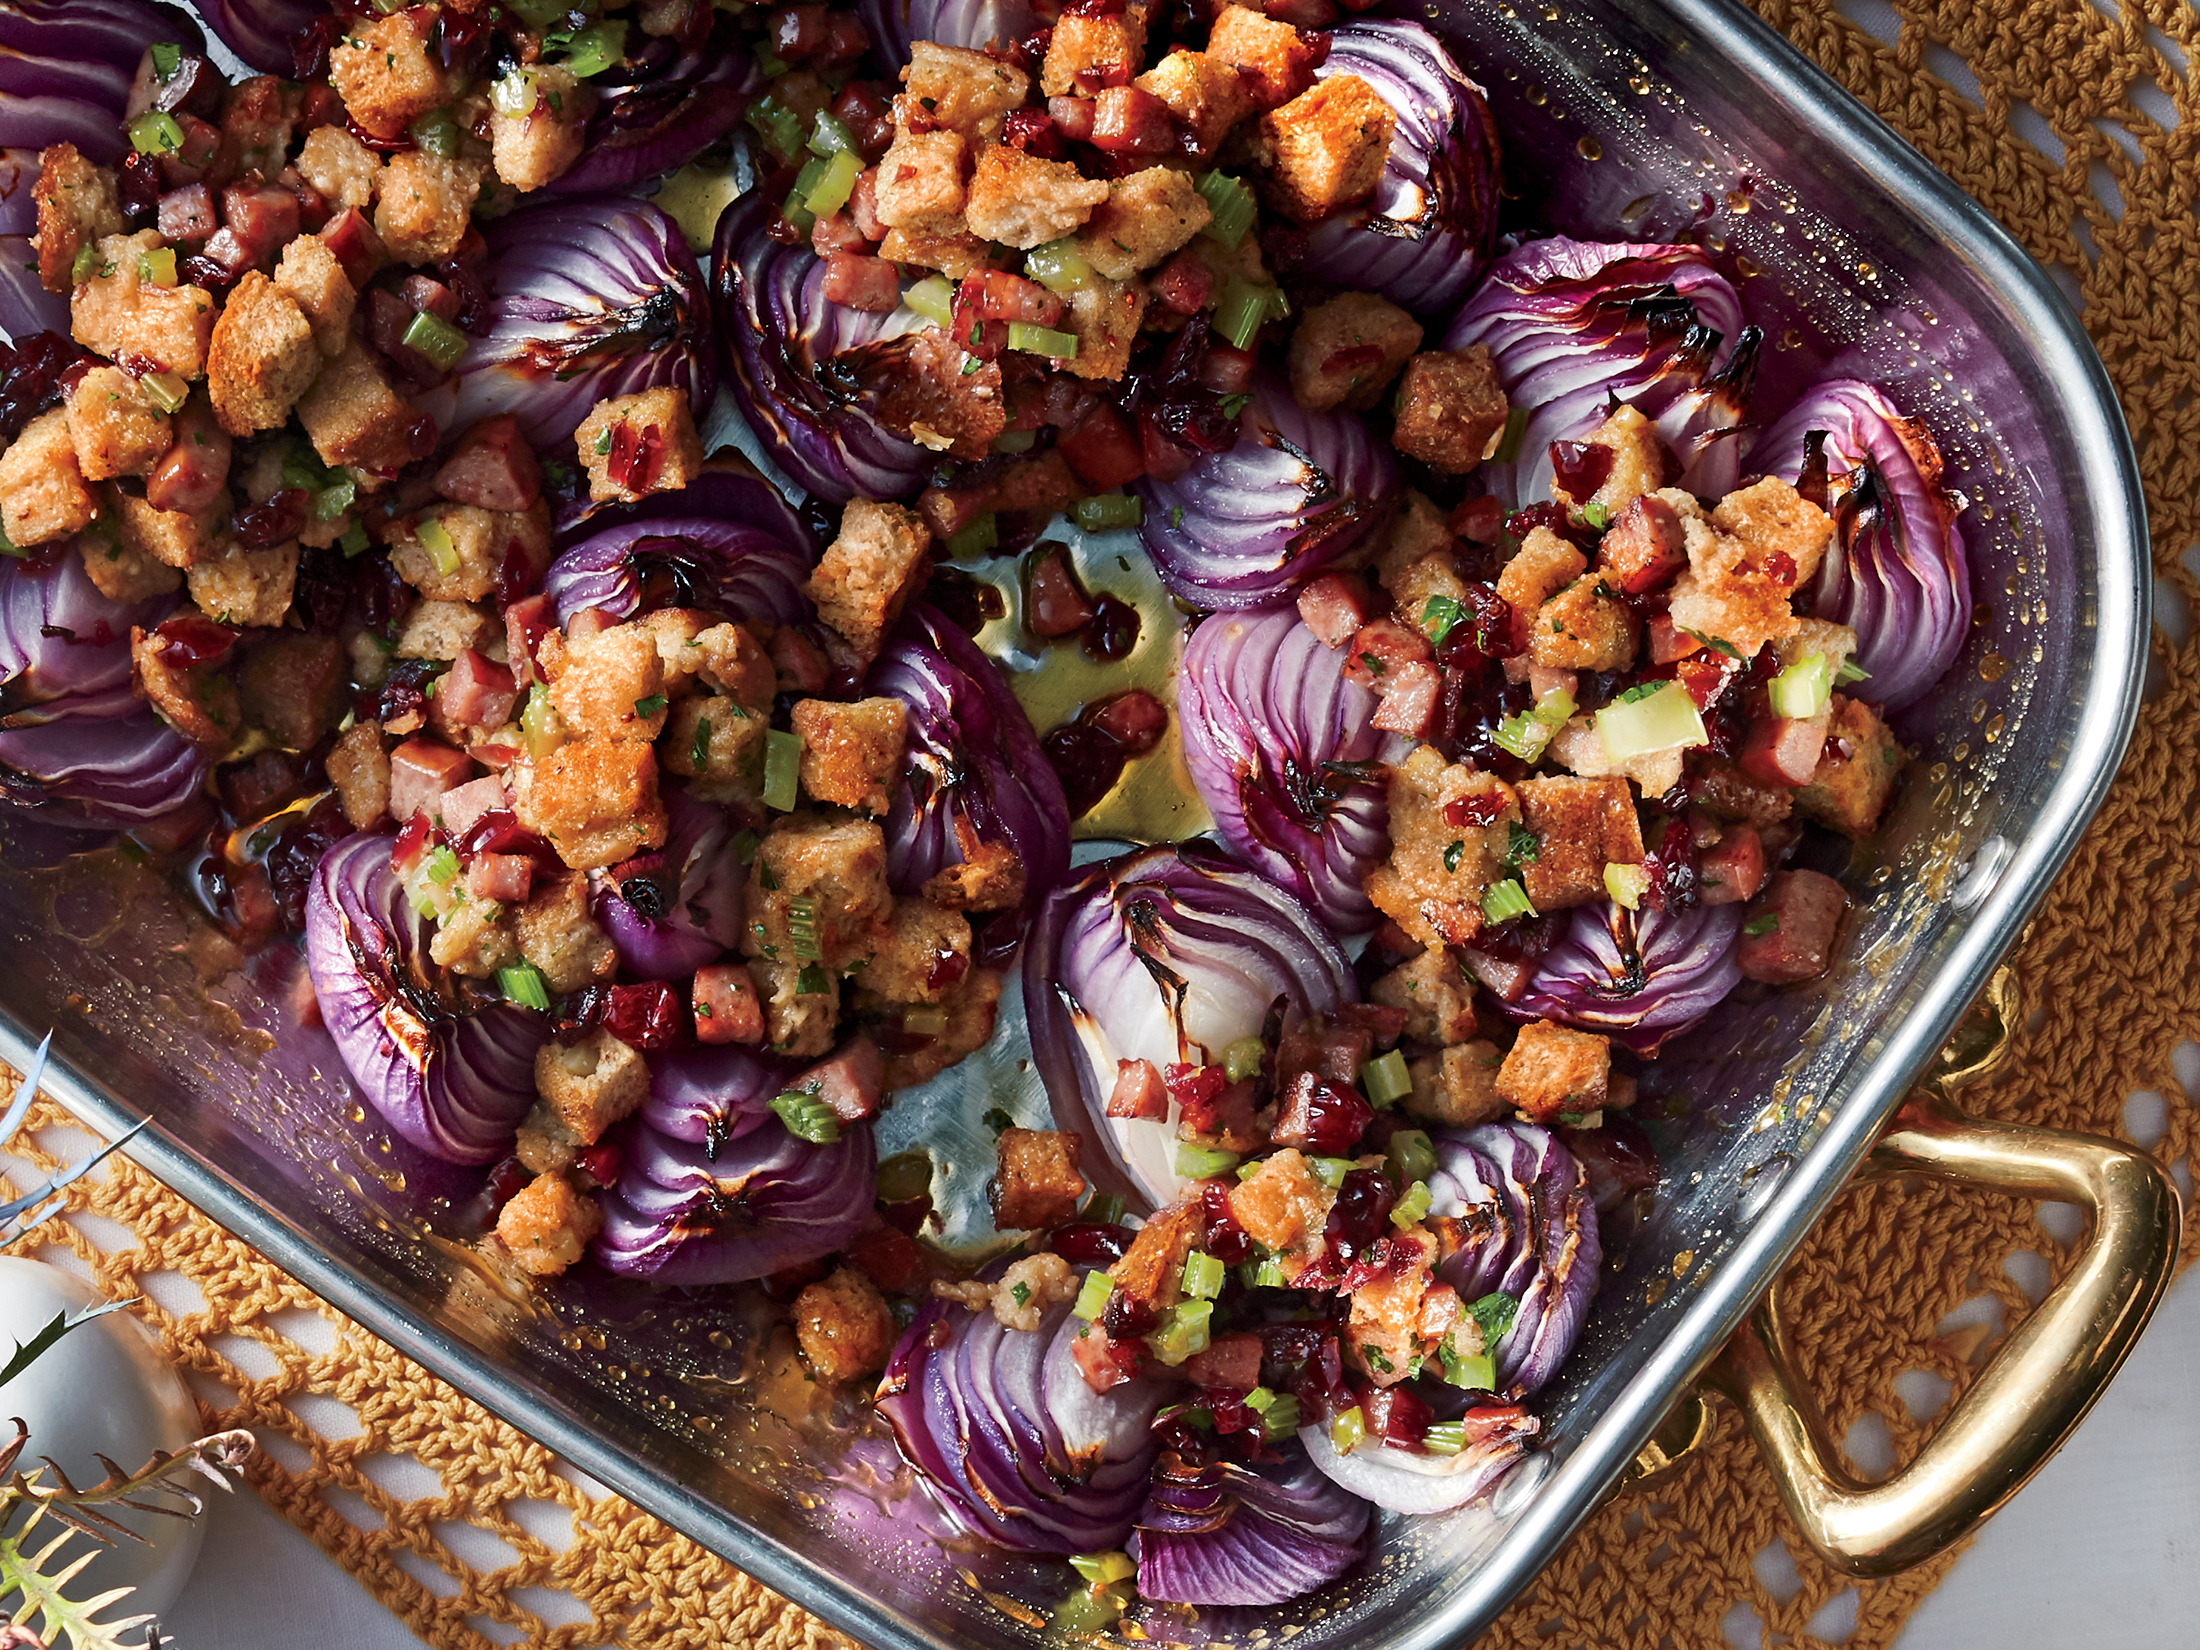 Sausage, Herb, and Cranberry–Stuffed Onions